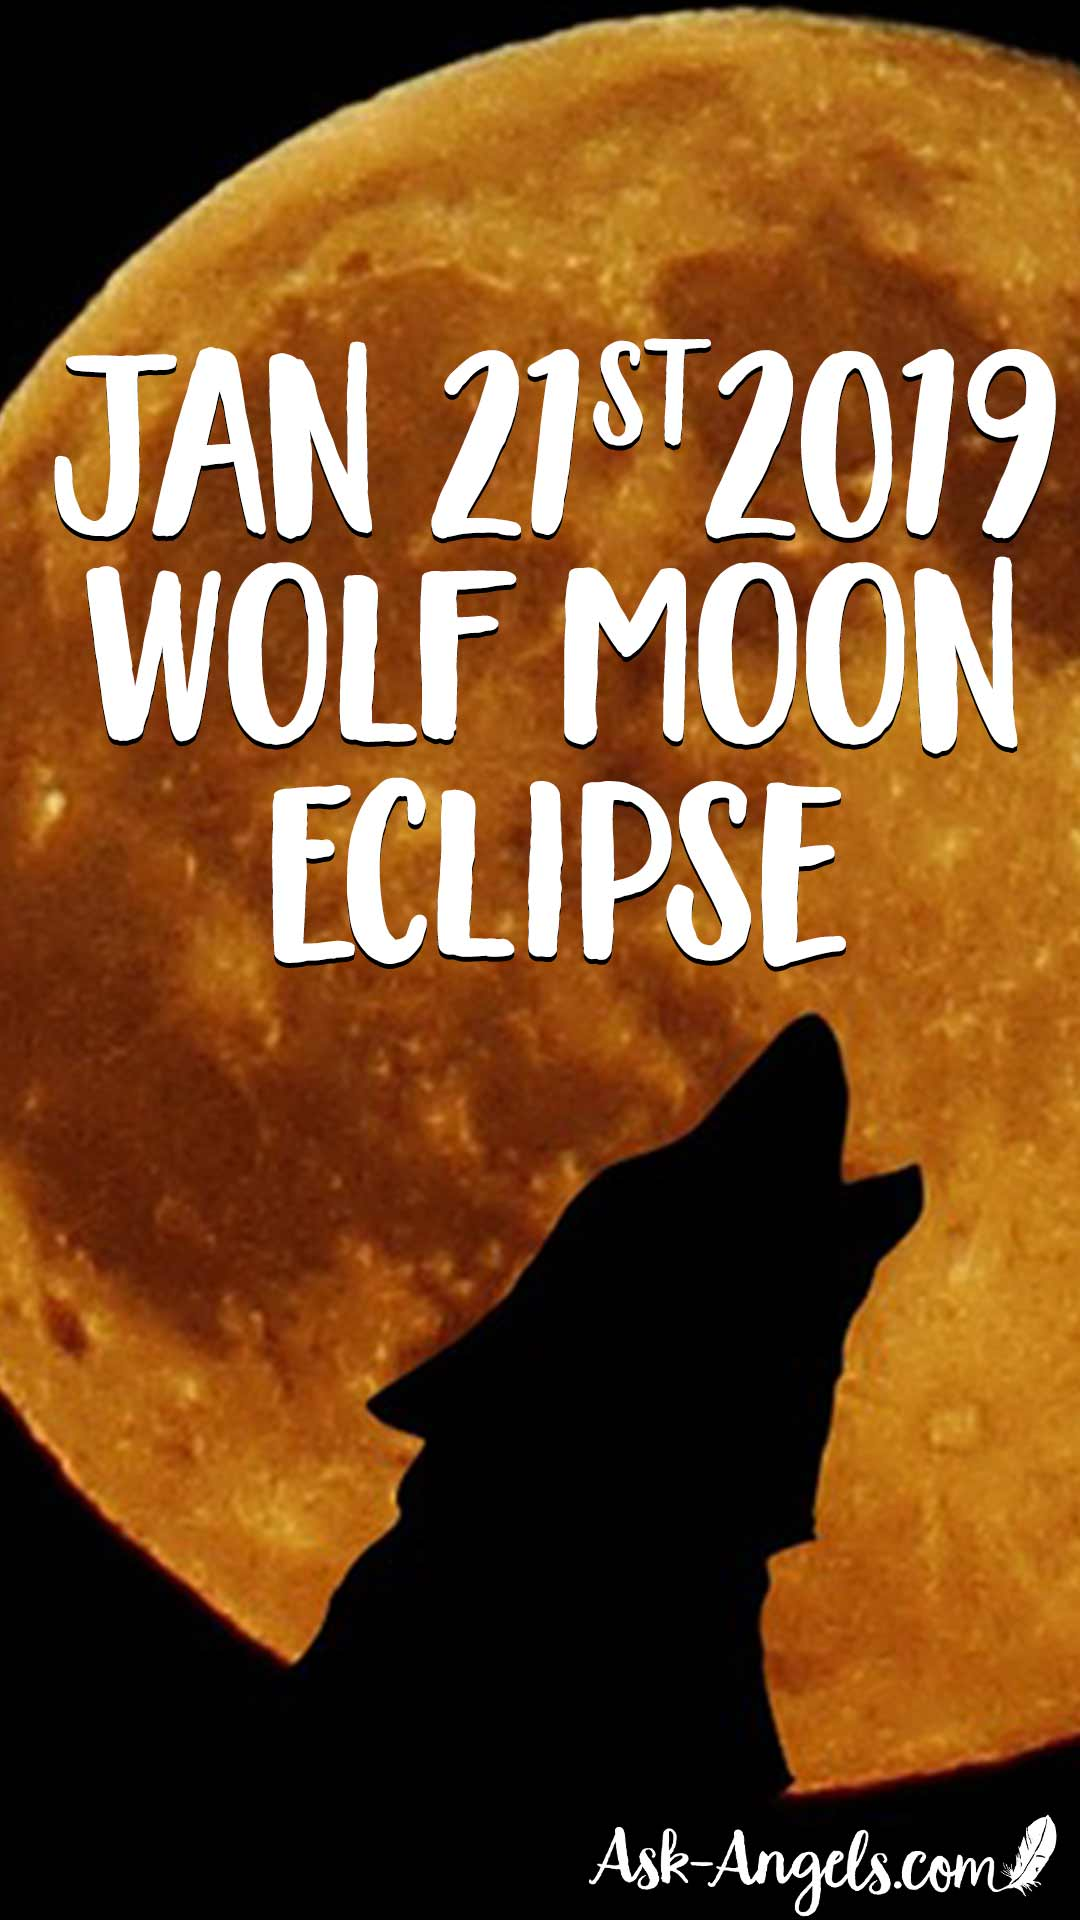 Jan 21 2019 Full Wolf Moon Eclipse